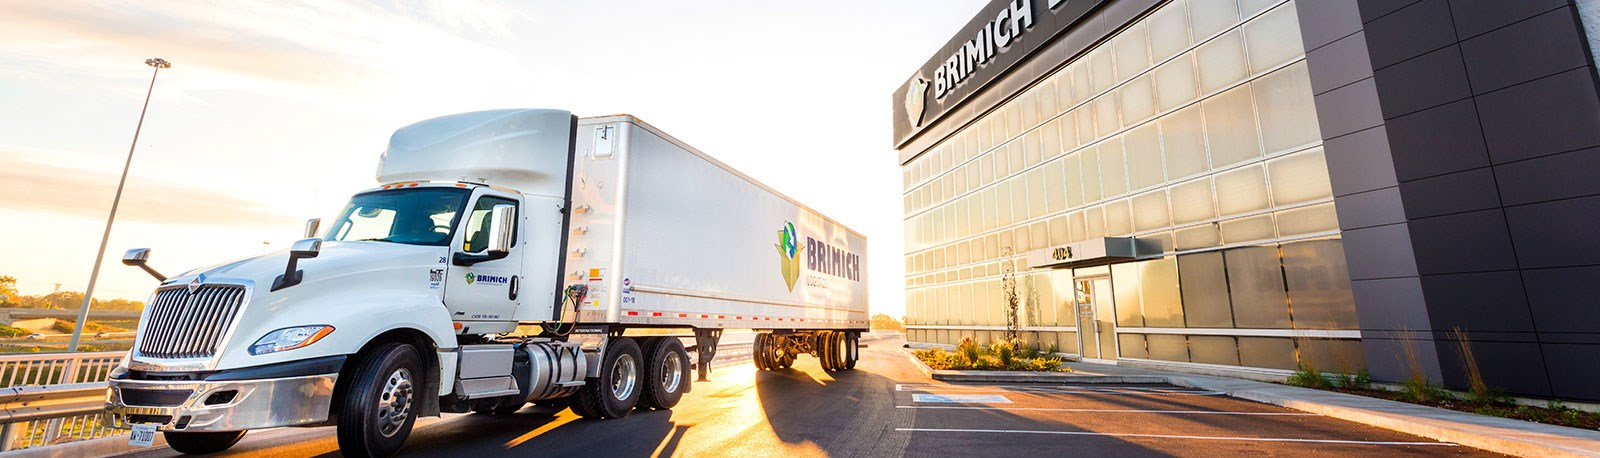 tractor trailer outisde of Brimich Logistics